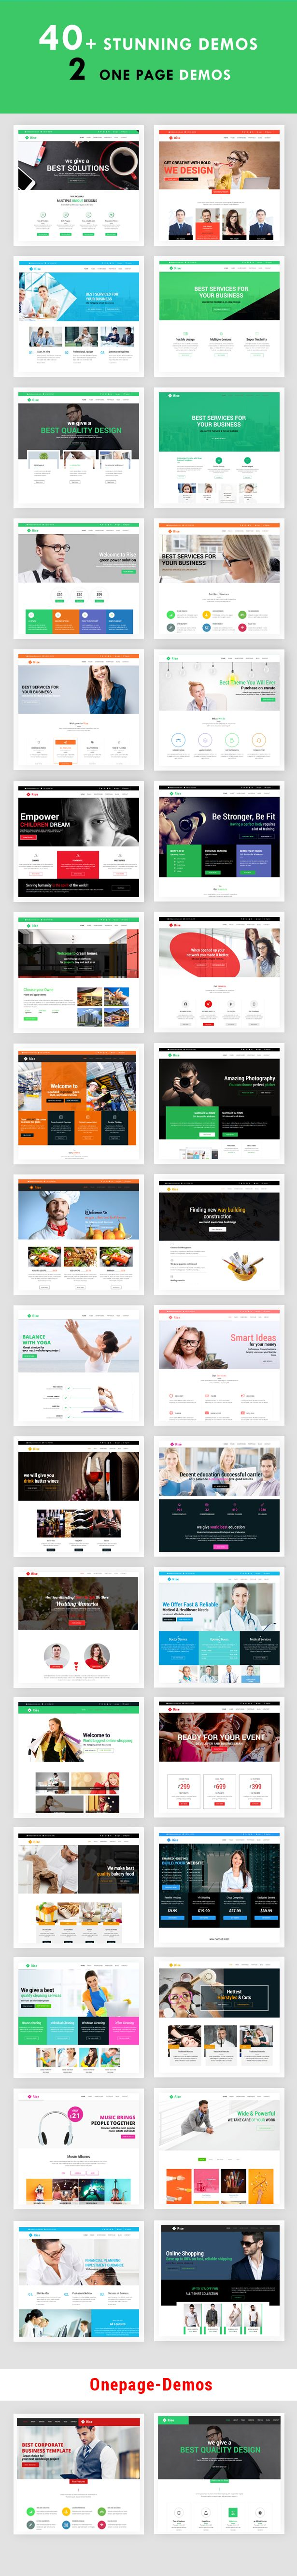 Rise - Responsive Multi-Purpose Creative Joomla Theme  #joomla #theme #template #multipurpose #blog, #business, #construction, #corporate, #creative, #event, #financial, #hosting, #multipurpose, #portfolio, #responsive, #restaurant, #wedding, #winery #themeforest #envato #windstripethemes